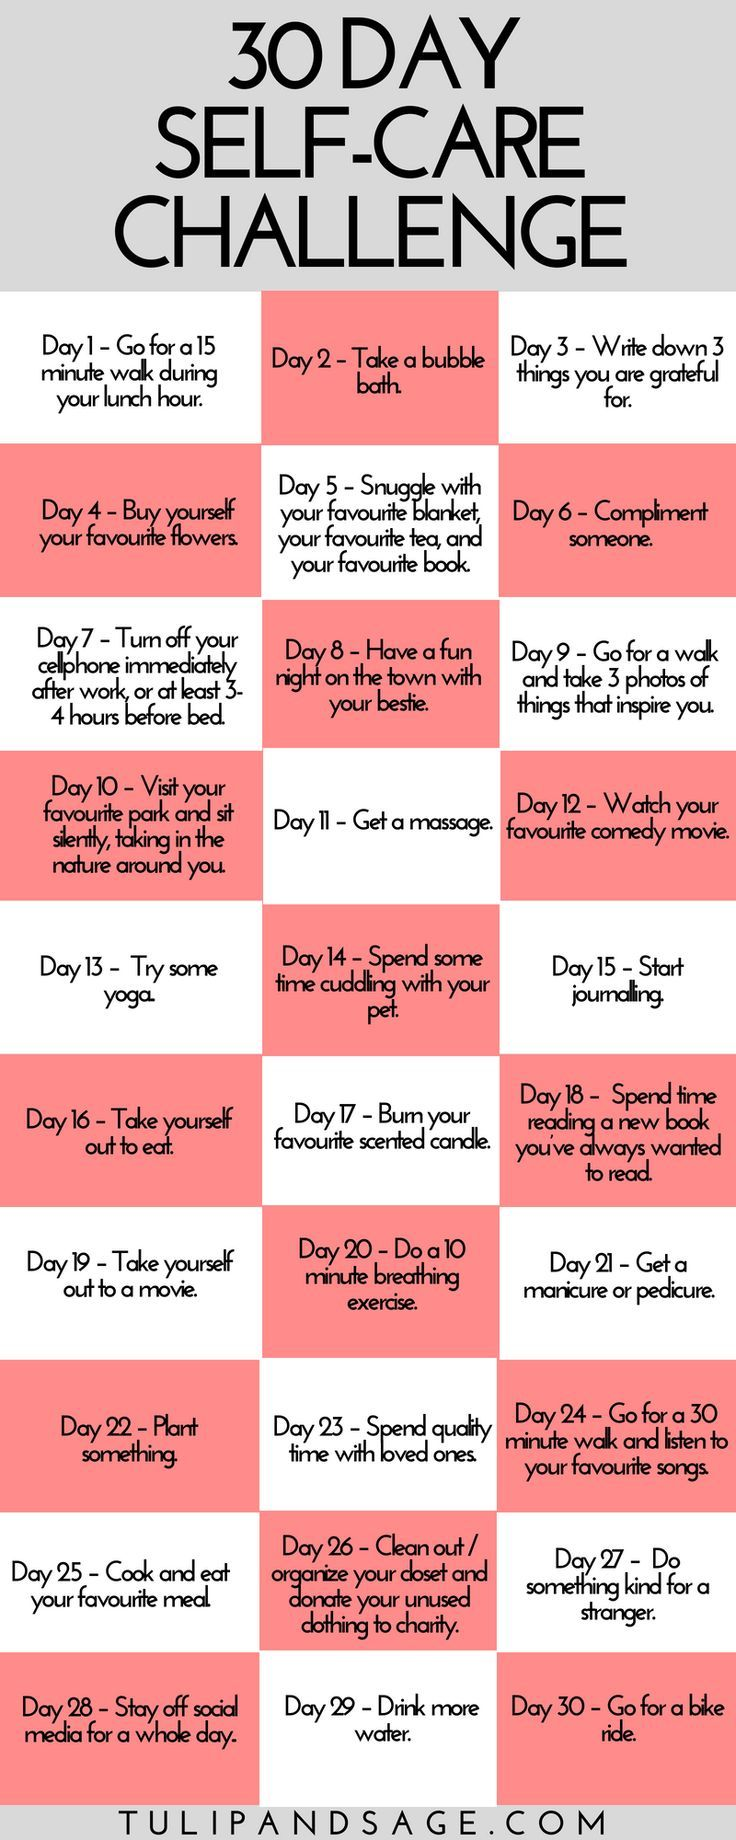 30 Day Self-Care Challenge (Free Printable) | Self-Care ...